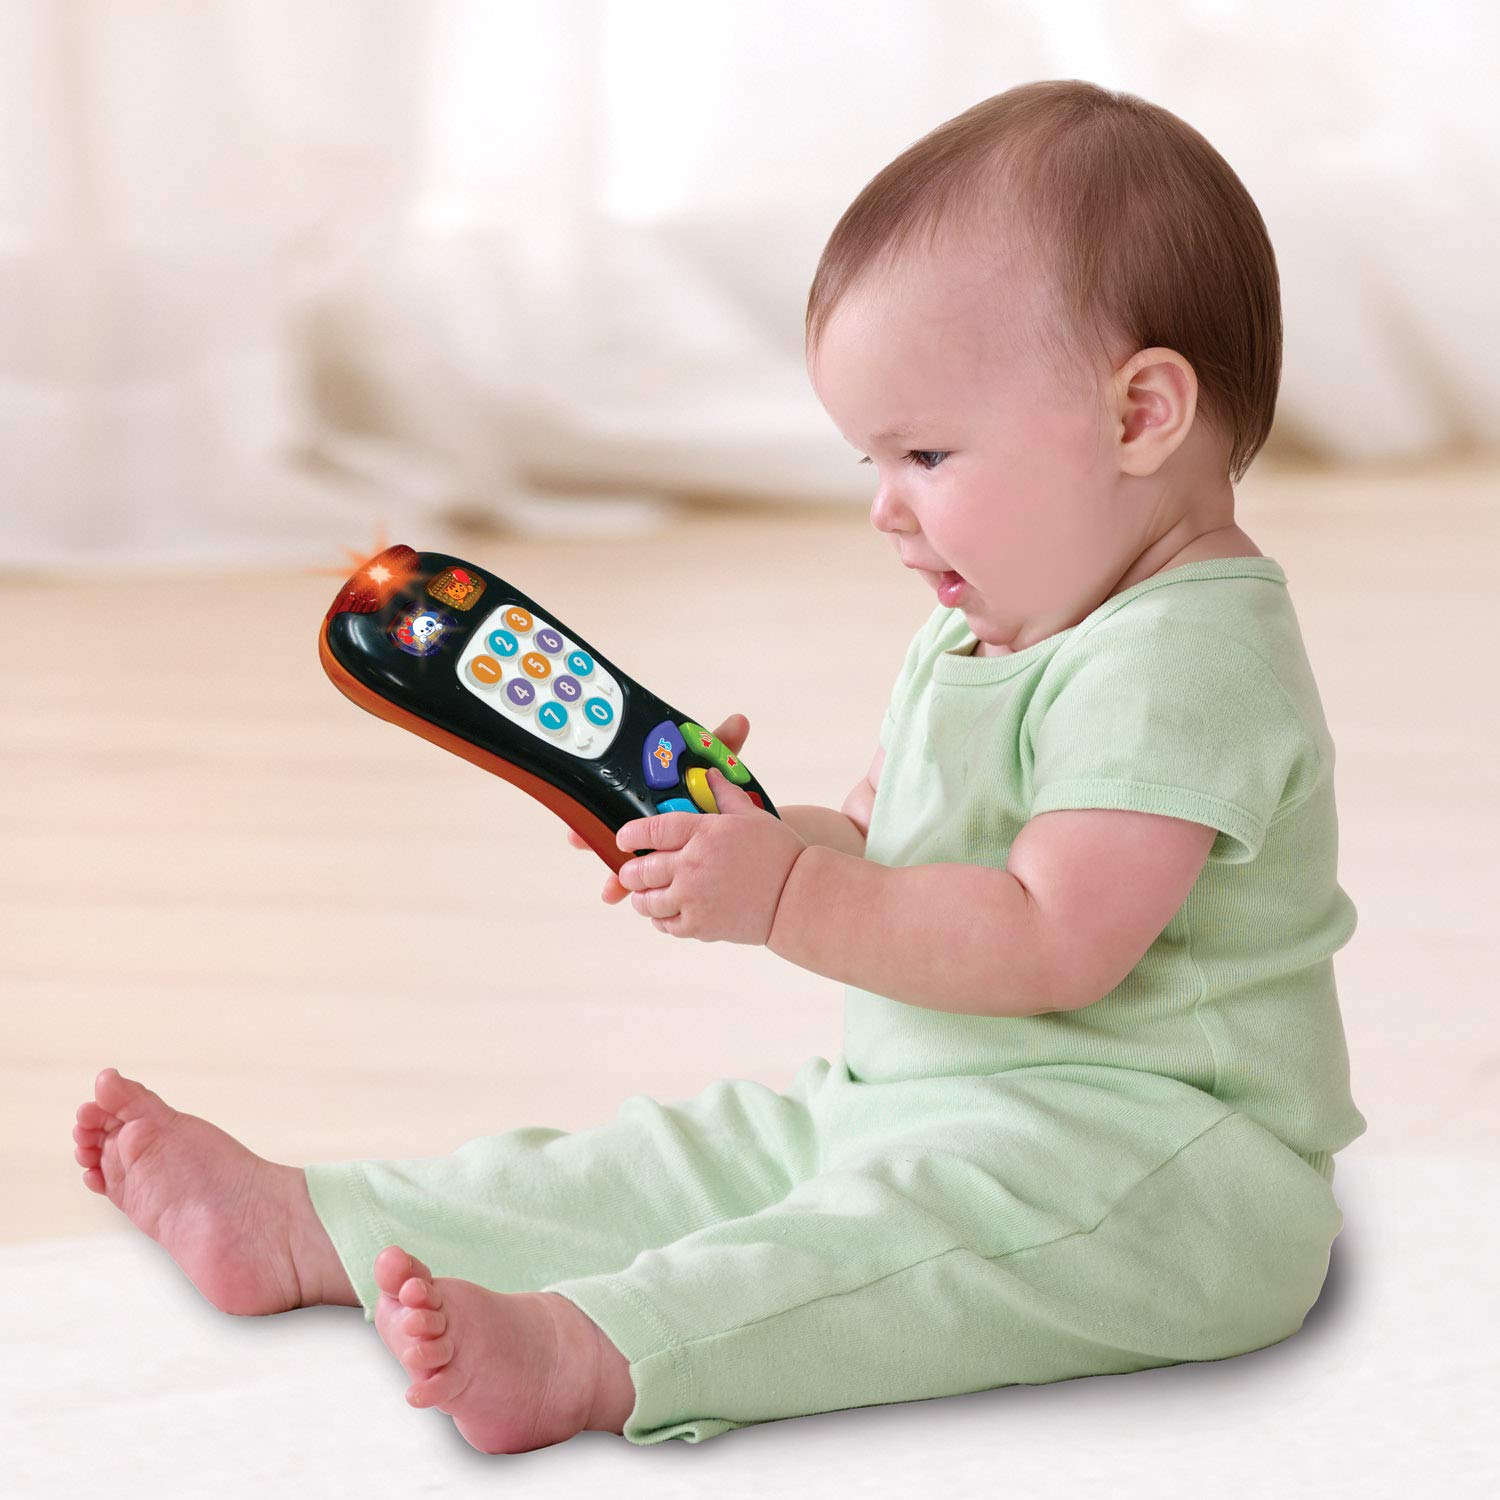 VTech Click and Count Remote, Black by VTech (Image #3)